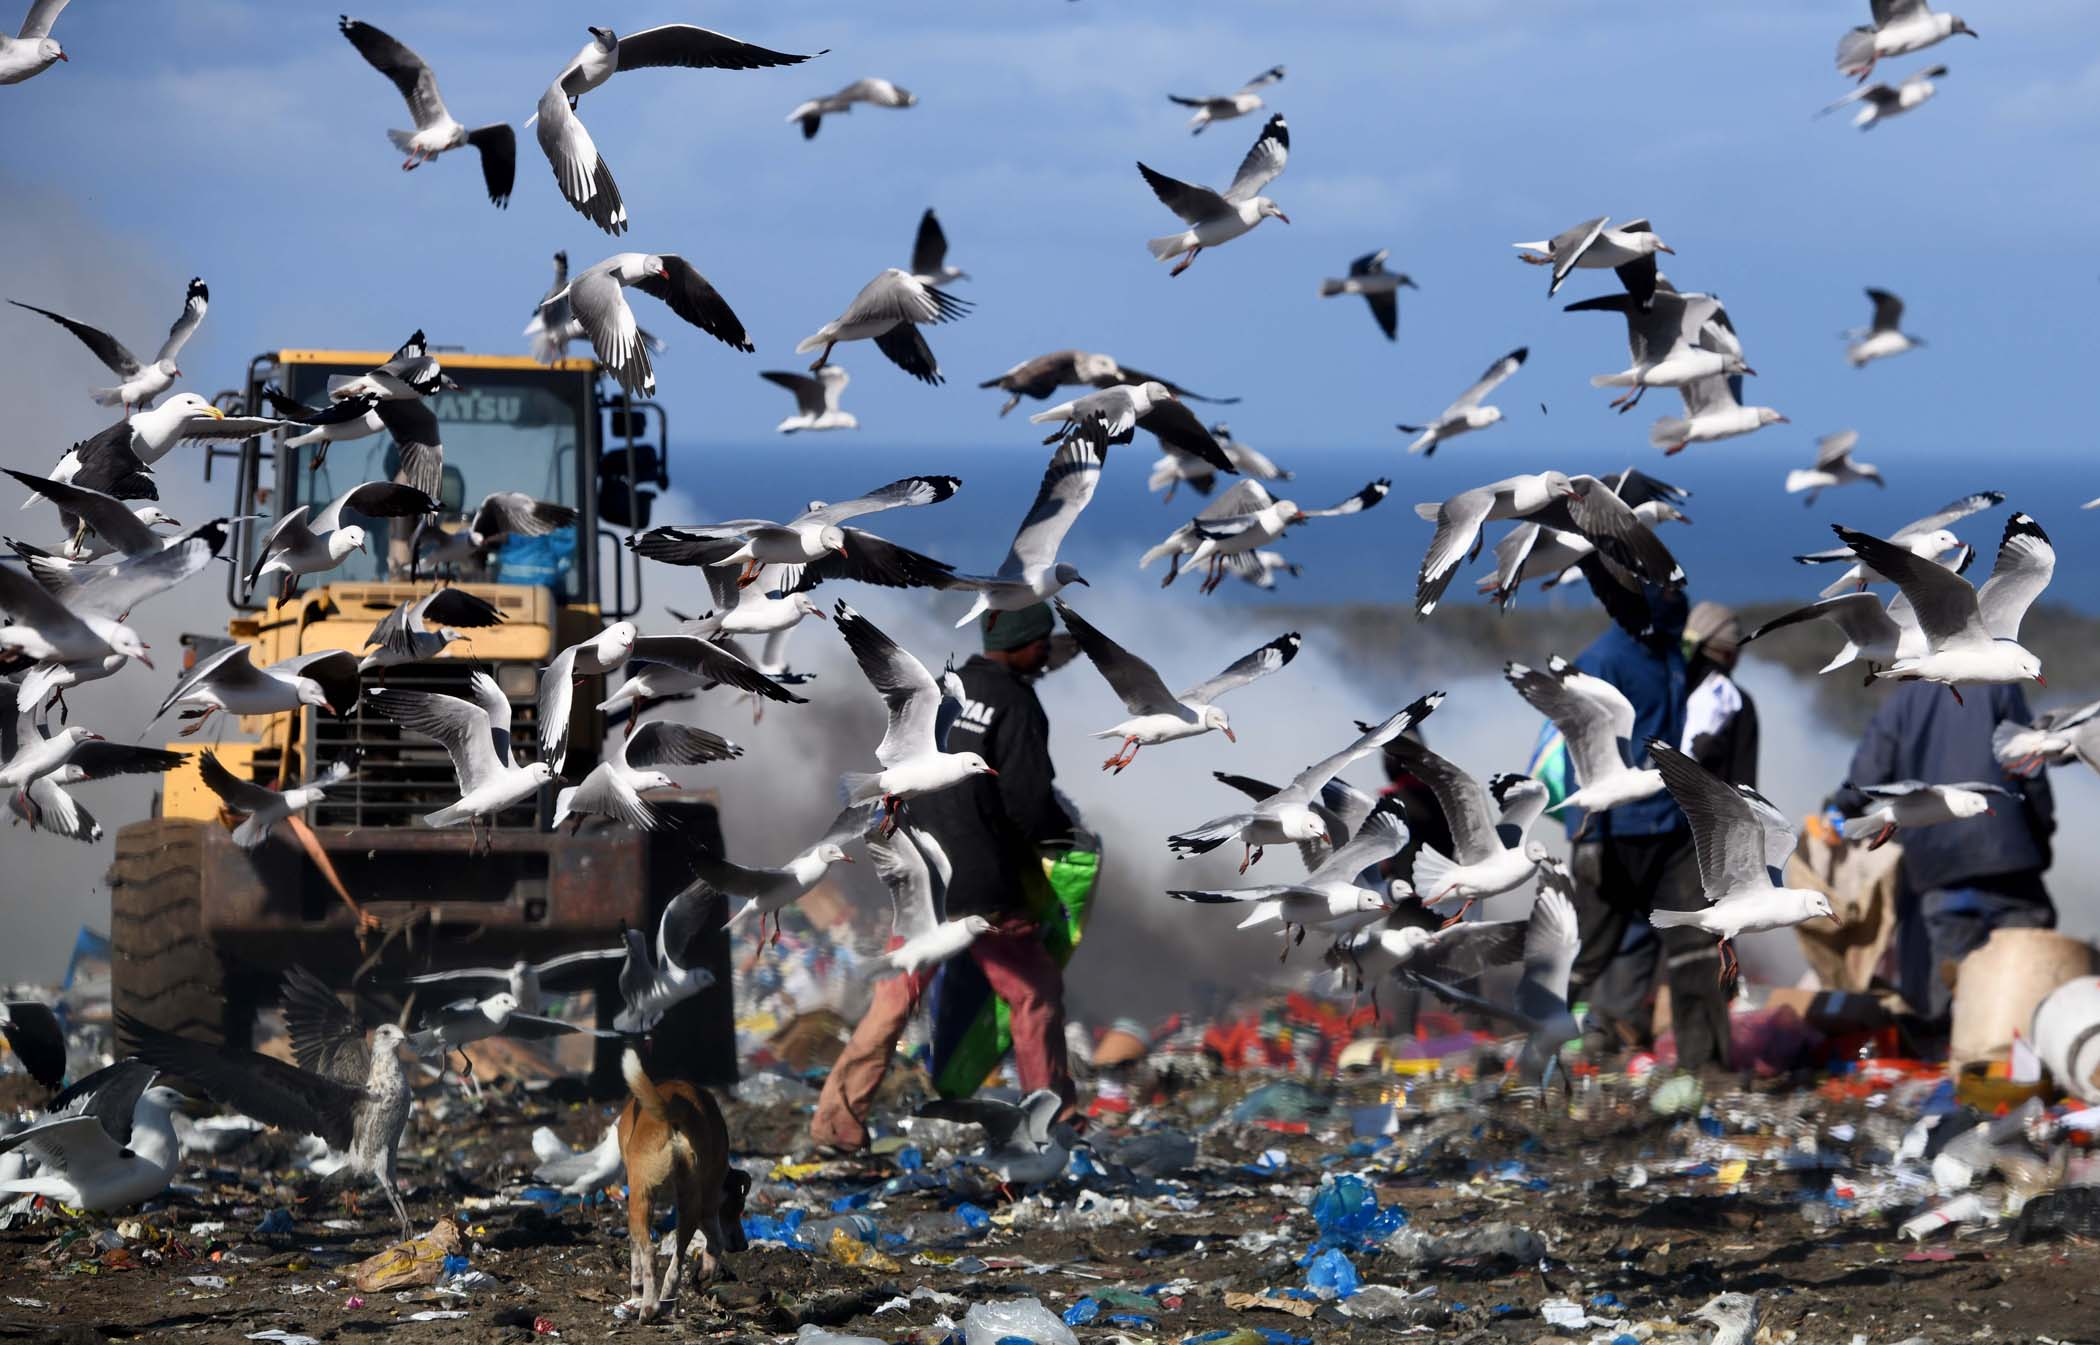 Scavenging for food and valuables among seagulls. PHOTO: Black Star/Spotlight